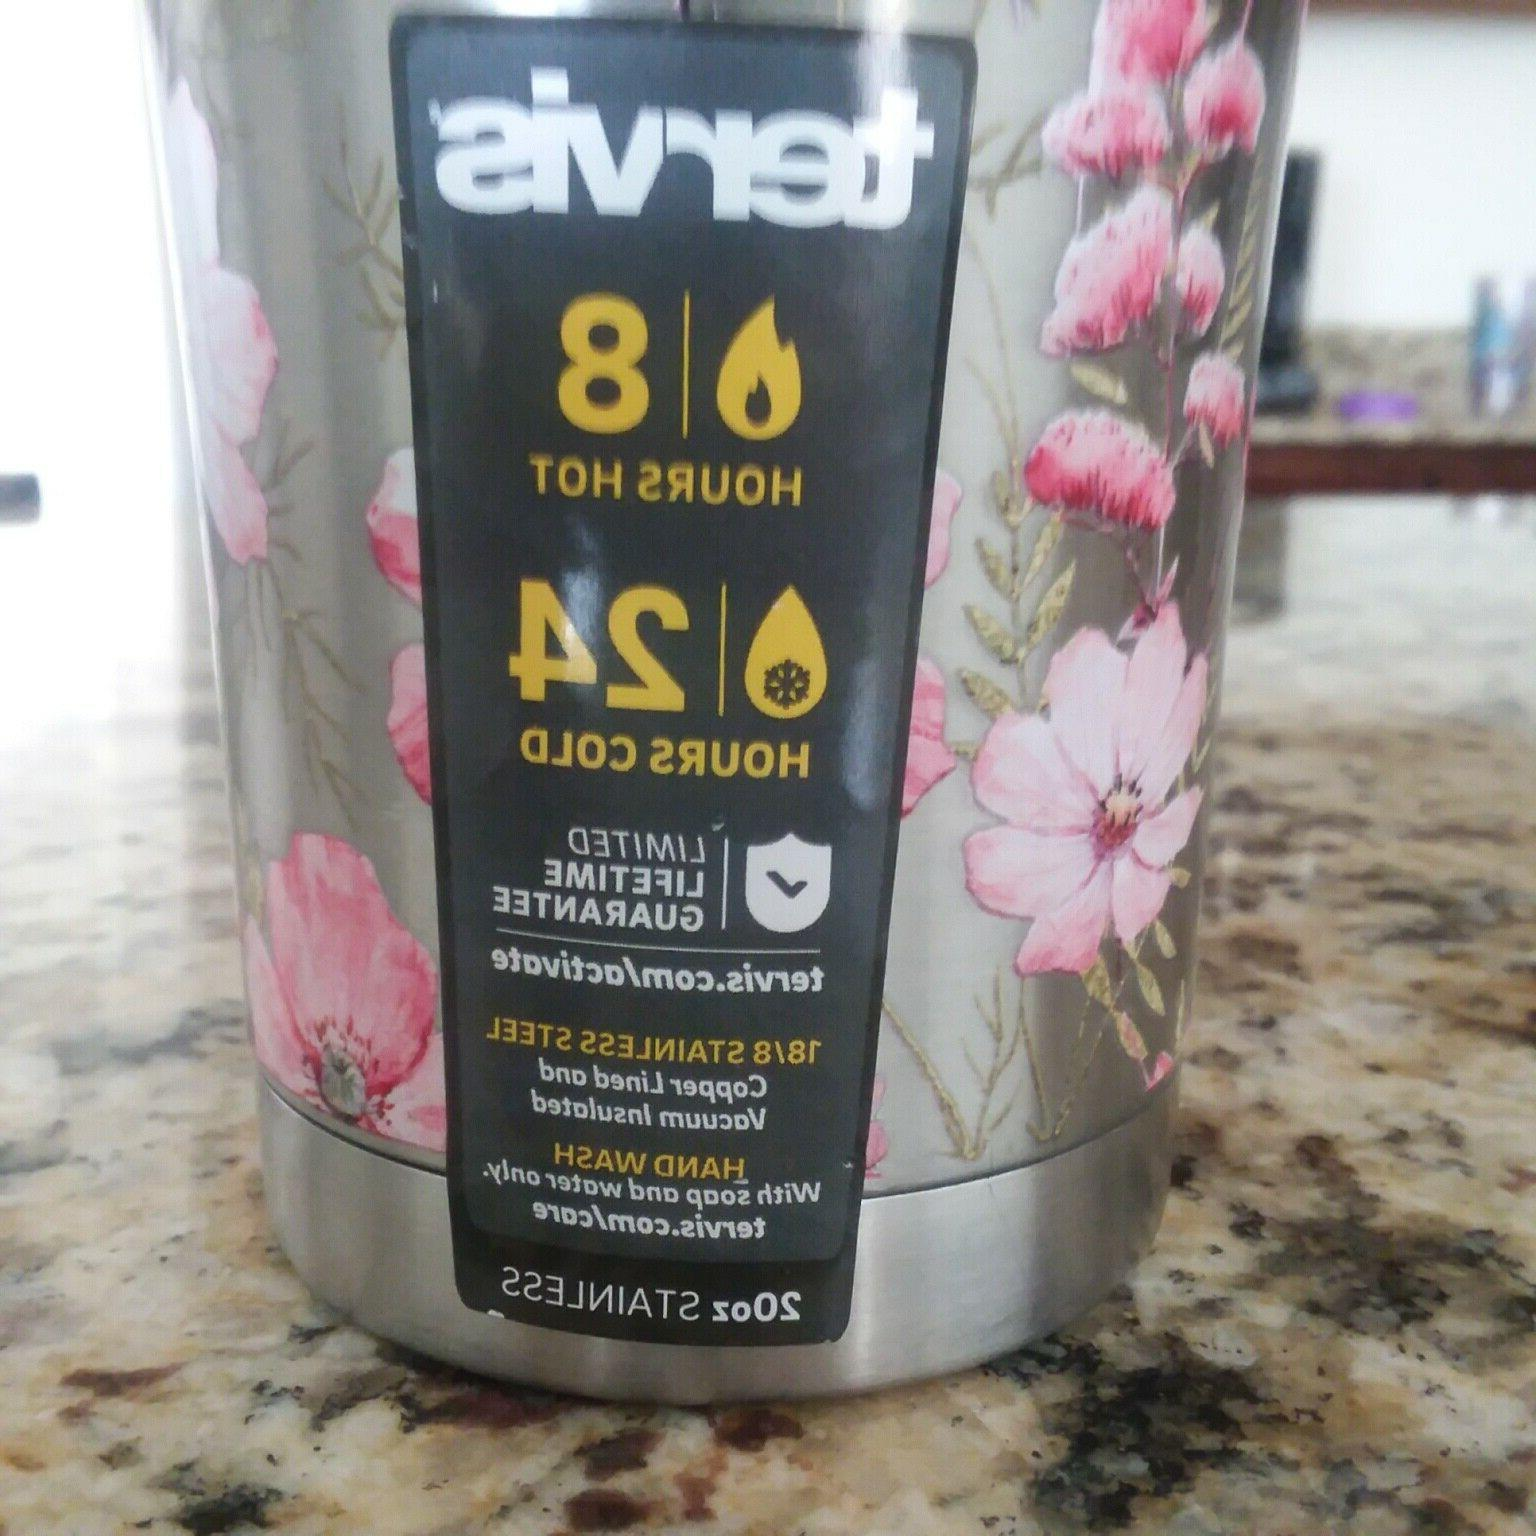 TERVIS Edge Stainless Steel Tumbler with